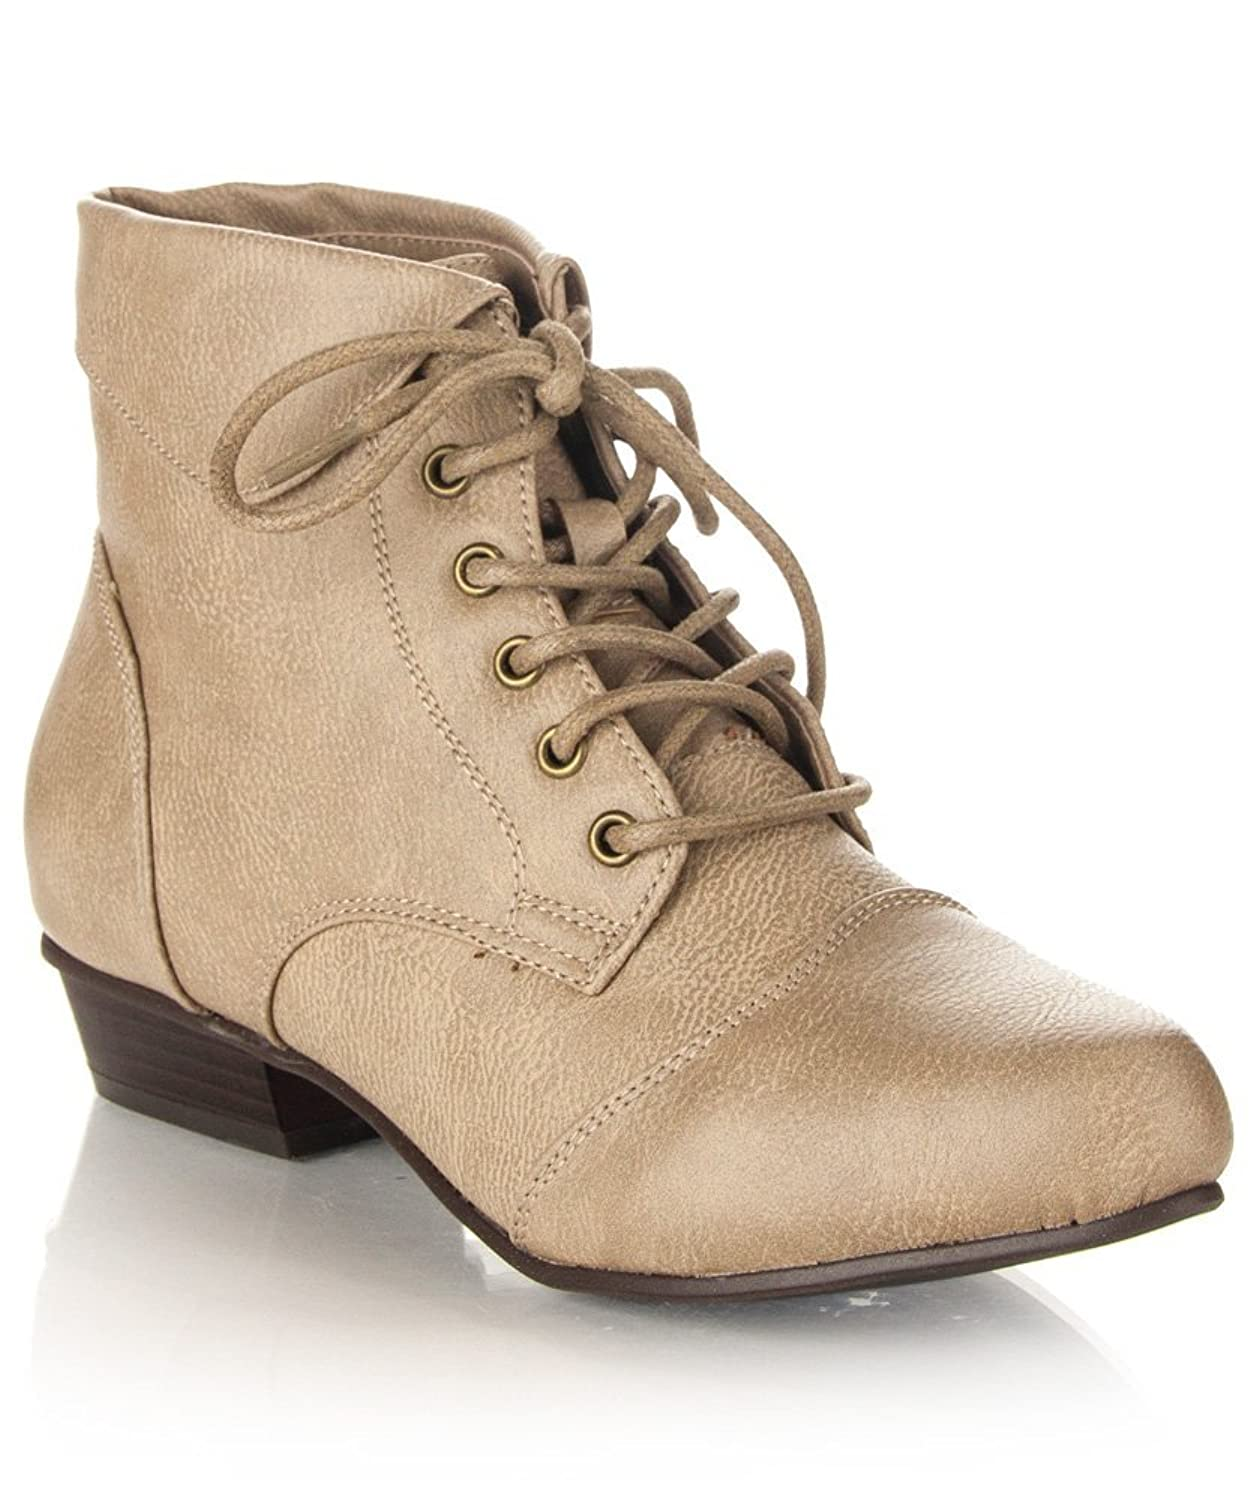 Ladies Victorian Boots & Shoes – Granny boots Womens Pointy Toe Oxford Low Chunky Heel Lace Up Ankle Bootie Boots With Collar Flip Over $24.99 AT vintagedancer.com